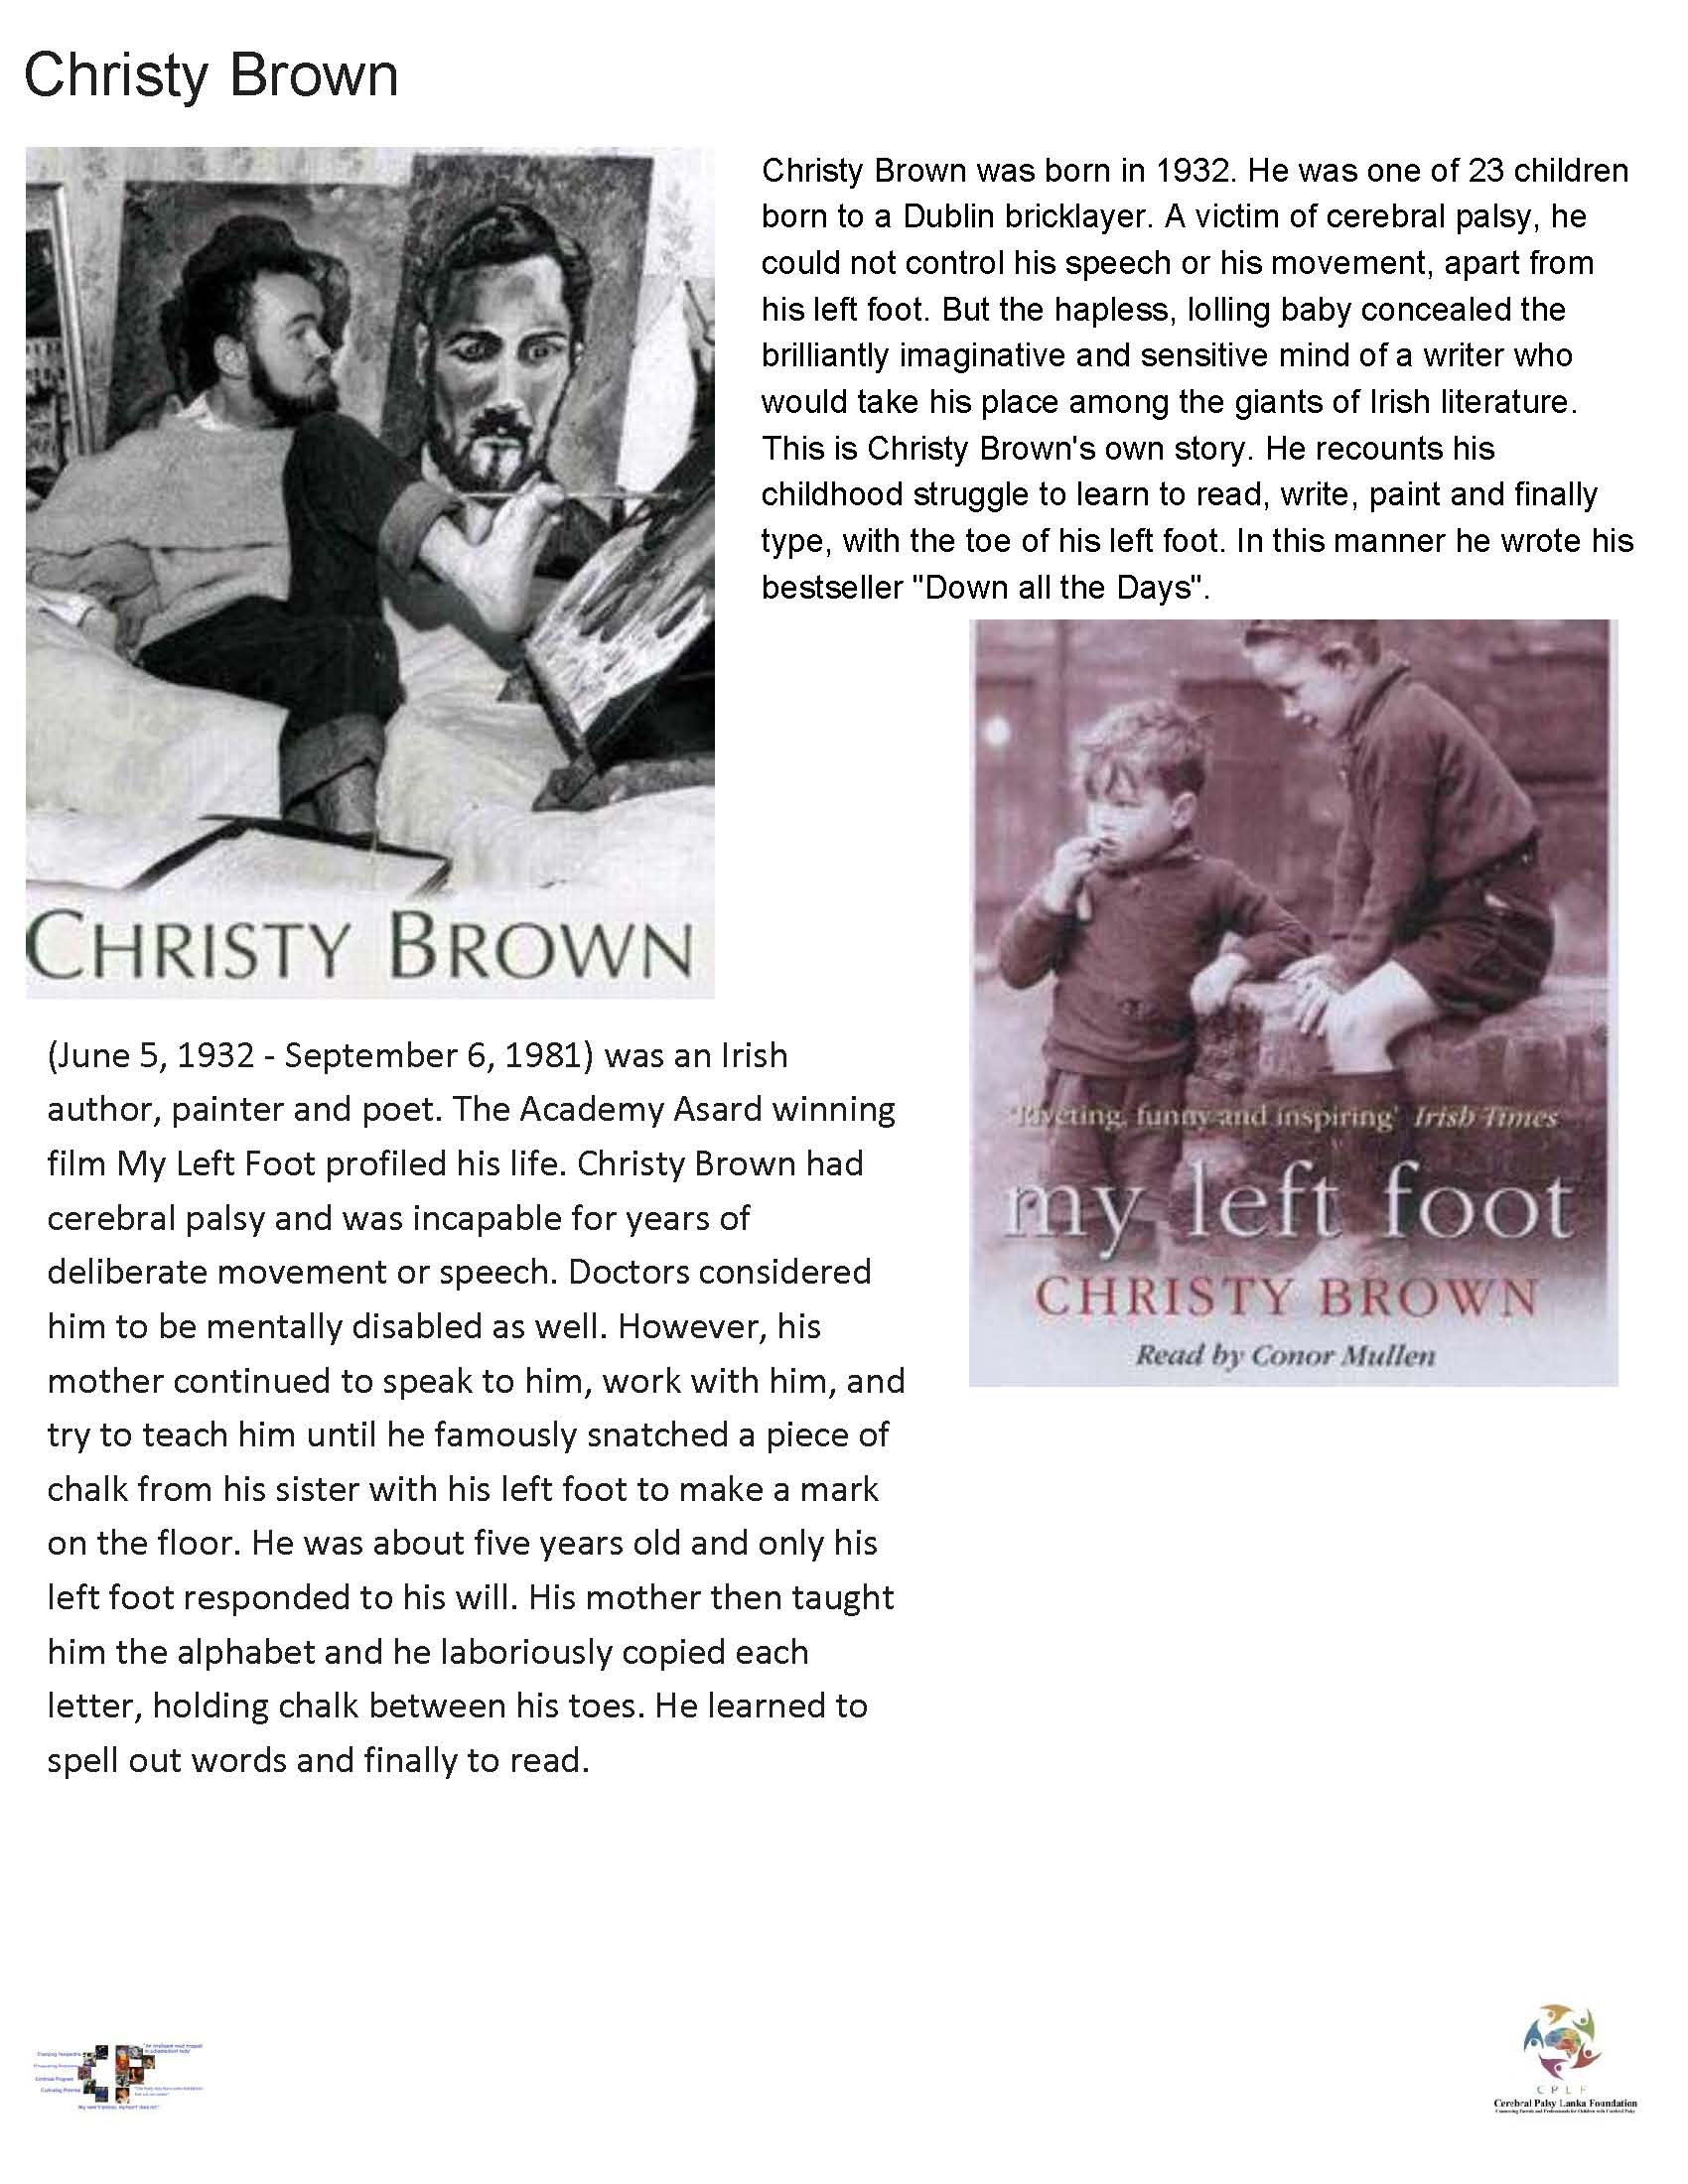 my left foot christy brown s its breif description themes Something in common trivia questions & answers : page 6 daniel day-lewis is the actor who played the part of christy brown in the 1989 movie version of my left foot.